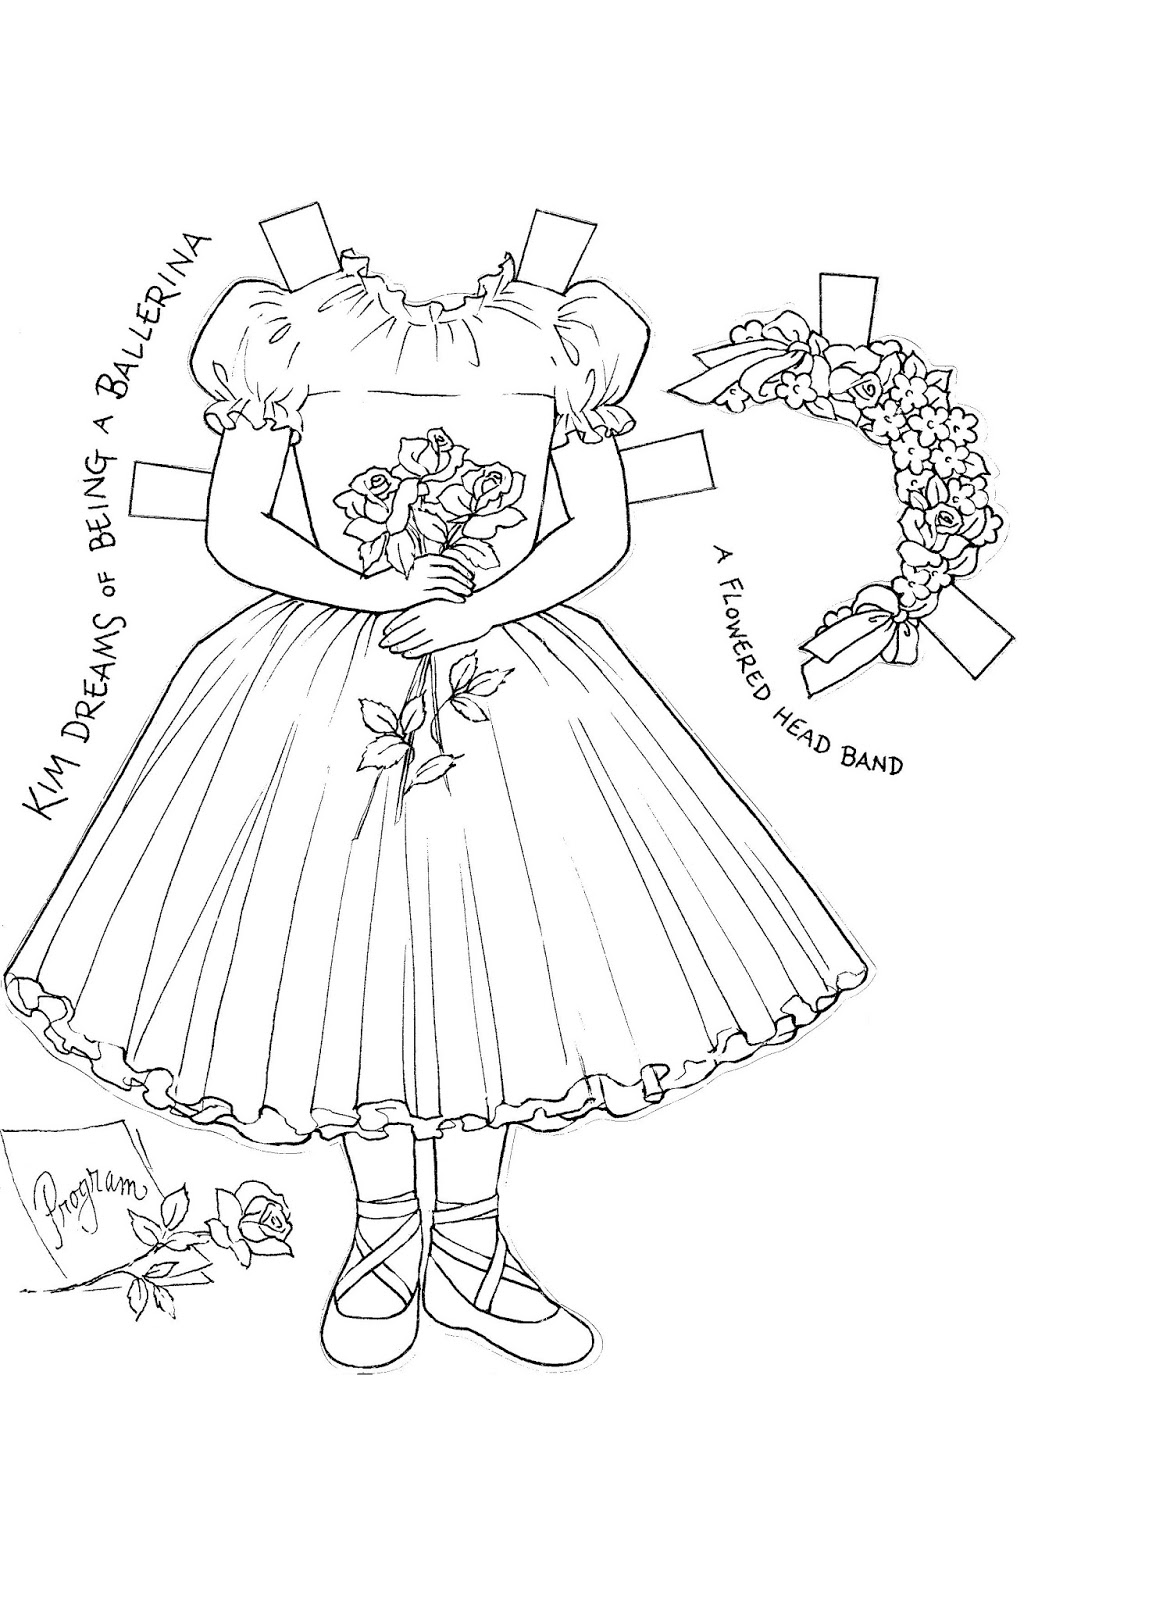 red farm studio coloring pages - photo#24